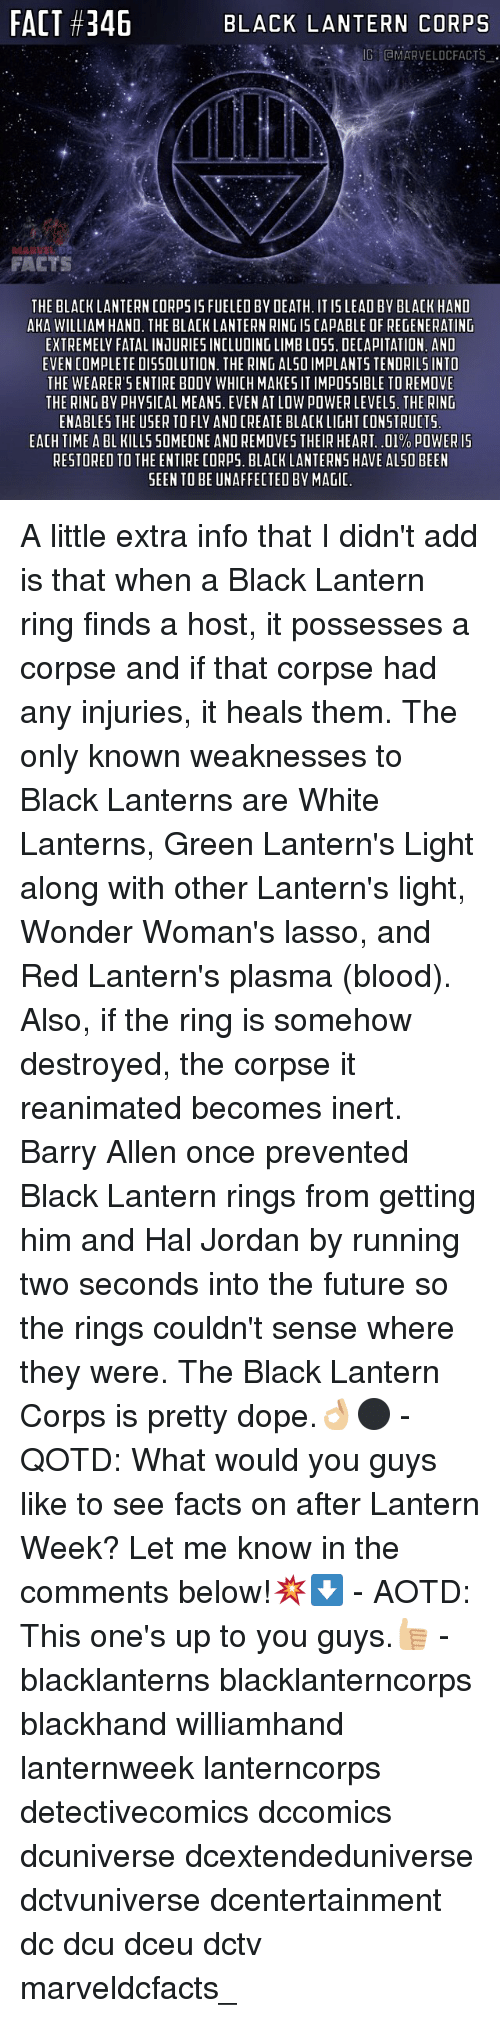 Dope, Facts, and Future: FACT #346  BLACK LANTERN CORPS  LDCFA  FACTS  THE BLACKLANTERN CORPS I5 FUELEO BY DEATH. IT IS LEAD BY BLACK HAND  AKA WILLIAM HAND. THE BLACK LANTERN RING IS CAPABLE OF REGENERATING  EXTREMELY FATAL INJURIES INCLUDING LIMB LOSS. DECAPITATION. AND  EVEN COMPLETE DISSOLUTION. THE RING ALS0 IMPLANTS TENDRILS INTO  THE WEARER'S ENTIRE BOOY WHICH MAKES IT IMPOSSIBLE TO REMOVE  THE RING BY PHYSICAL MEANS. EVEN AT LOW POWER LEVELS. THE RING  ENABLES THE USER TO FLY AND CREATE BLACK LIGHT CONSTRUCTS  EACH TIME A BL KILLS SOMEONE AND REMOVES THEIR HEART, .01% POWER 15  RESTORED TO THE ENTIRE CORPS. BLACK LANTERNS HAVE ALSO BEEN  SEEN TO BE UNAFFECTEO BY MAGI A little extra info that I didn't add is that when a Black Lantern ring finds a host, it possesses a corpse and if that corpse had any injuries, it heals them. The only known weaknesses to Black Lanterns are White Lanterns, Green Lantern's Light along with other Lantern's light, Wonder Woman's lasso, and Red Lantern's plasma (blood). Also, if the ring is somehow destroyed, the corpse it reanimated becomes inert. Barry Allen once prevented Black Lantern rings from getting him and Hal Jordan by running two seconds into the future so the rings couldn't sense where they were. The Black Lantern Corps is pretty dope.👌🏼⚫️ - QOTD: What would you guys like to see facts on after Lantern Week? Let me know in the comments below!💥⬇️ - AOTD: This one's up to you guys.👍🏼 - blacklanterns blacklanterncorps blackhand williamhand lanternweek lanterncorps detectivecomics dccomics dcuniverse dcextendeduniverse dctvuniverse dcentertainment dc dcu dceu dctv marveldcfacts_